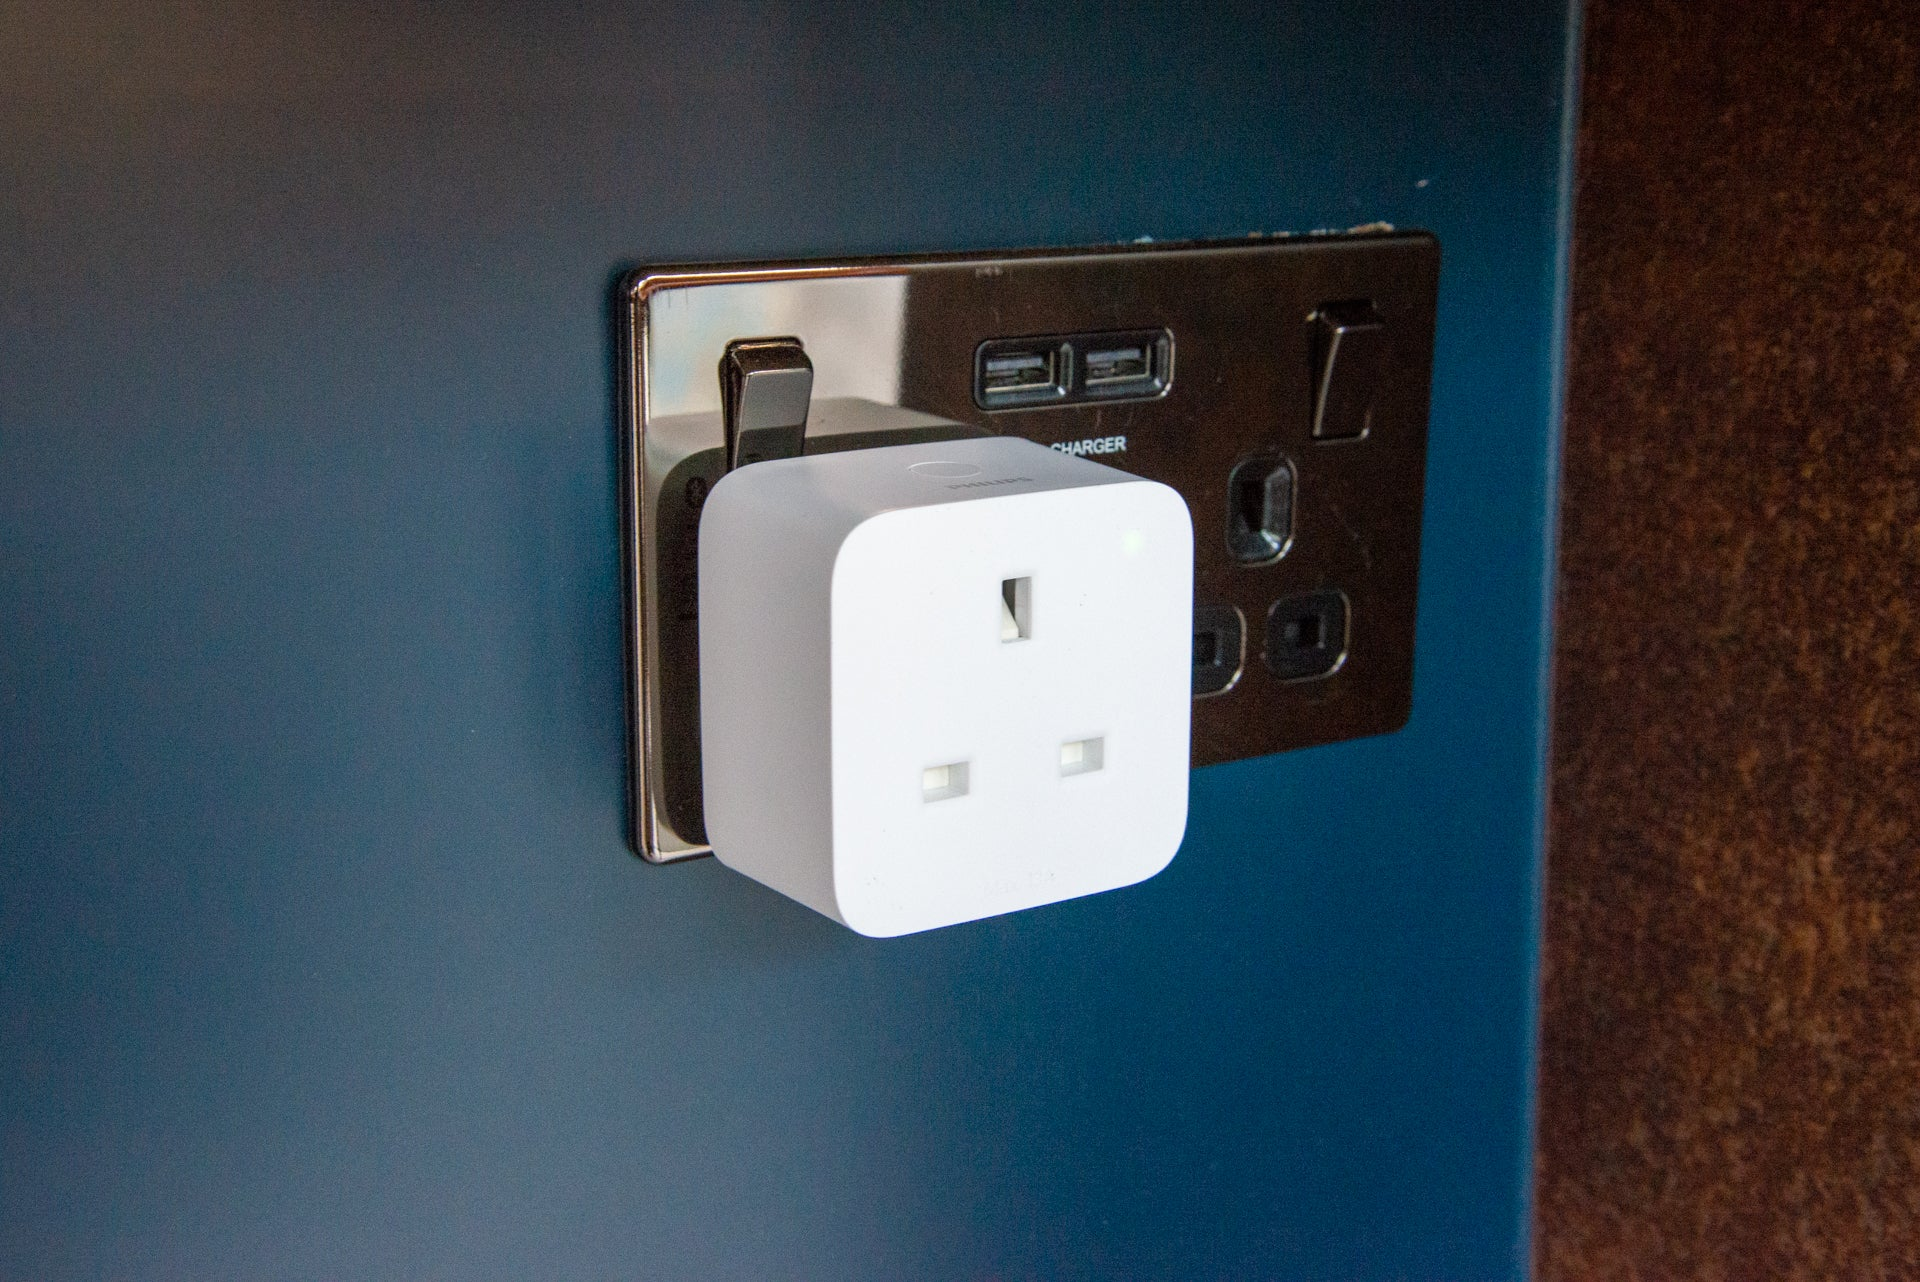 Best Smart Plugs 2020: Turn dumb things into smart things | Trusted Reviews